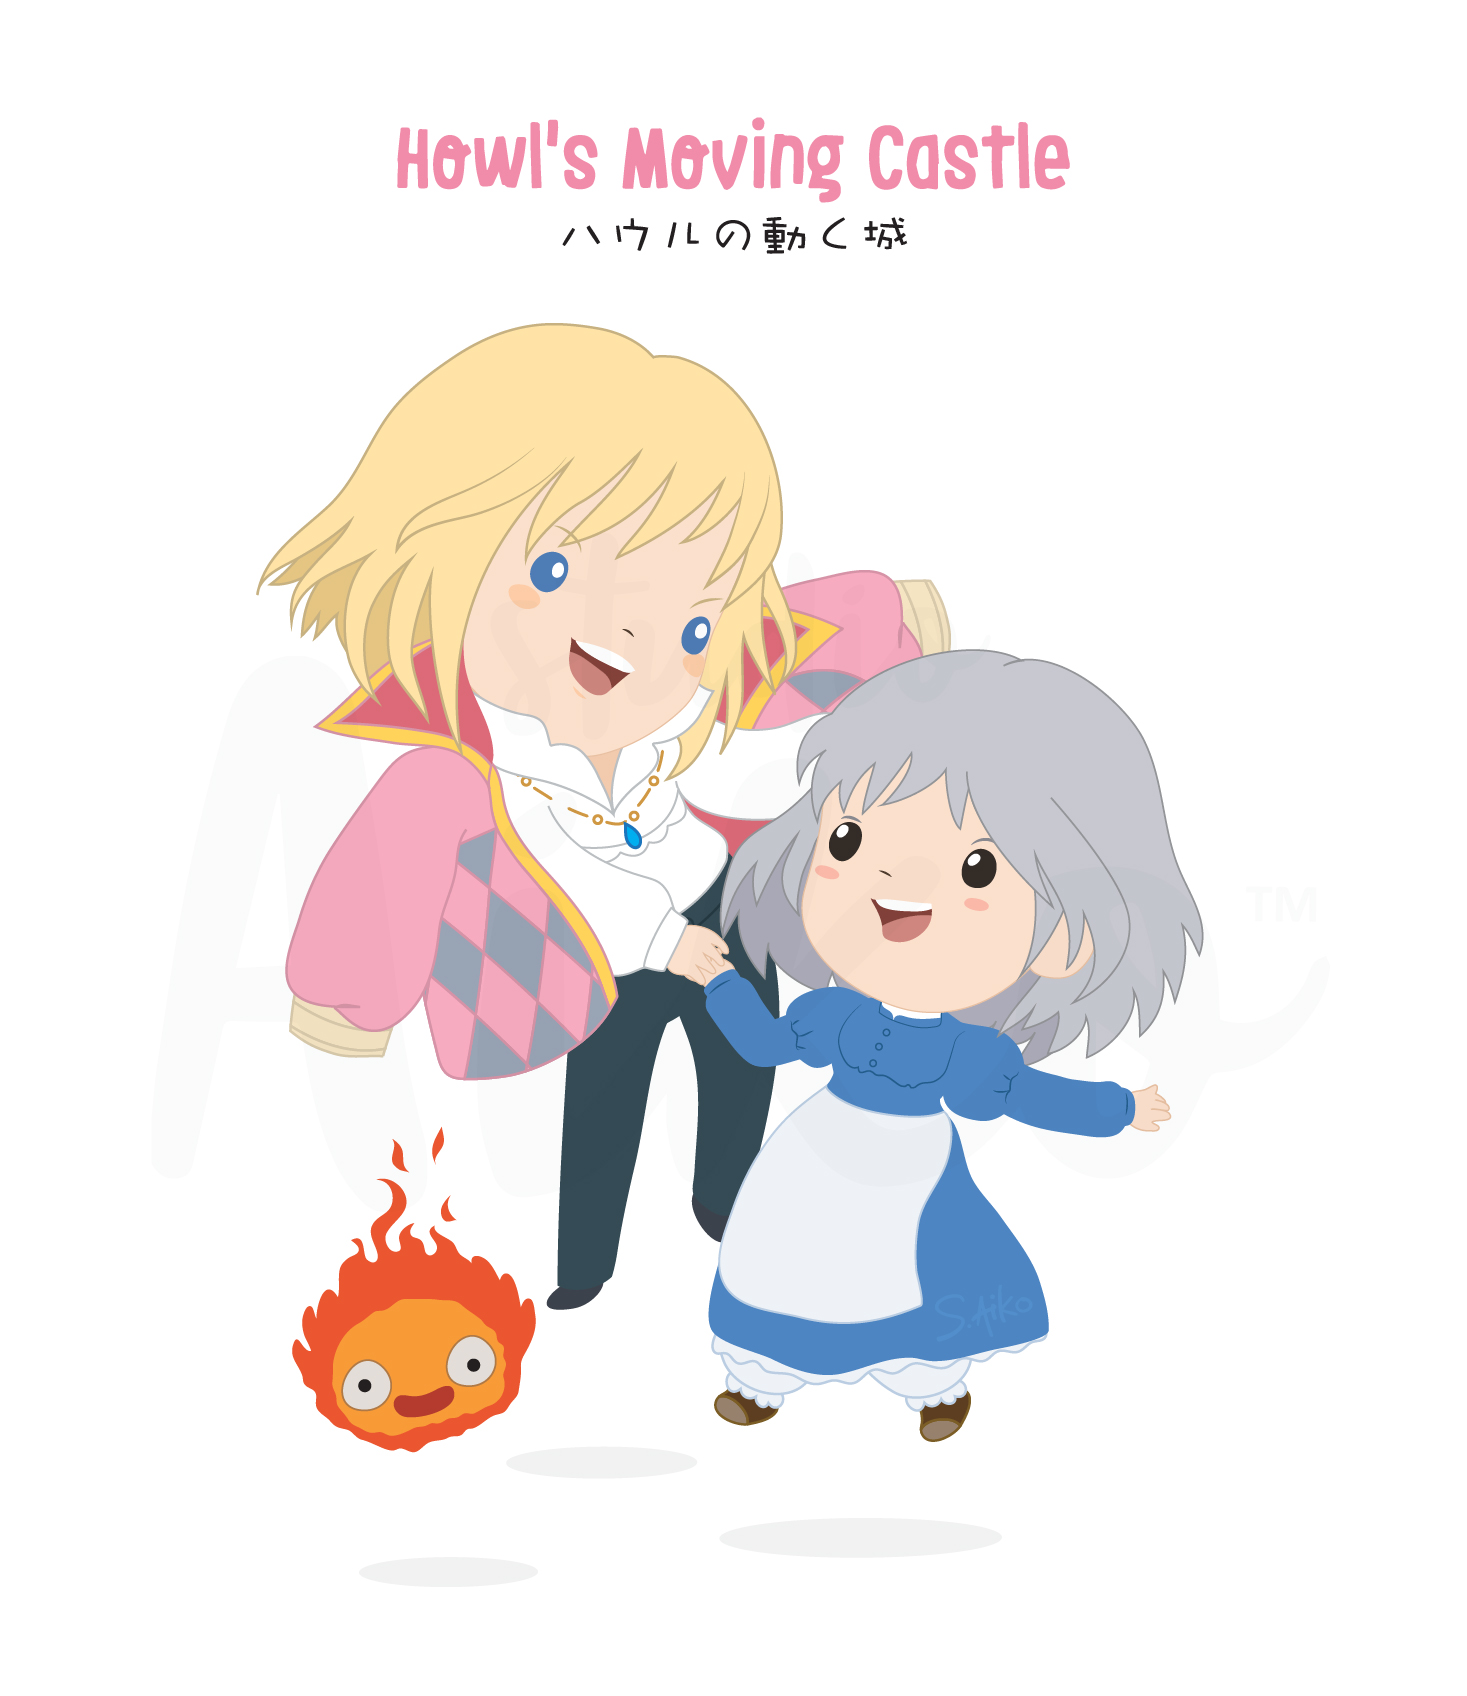 Ghibli-Howl's moving castle